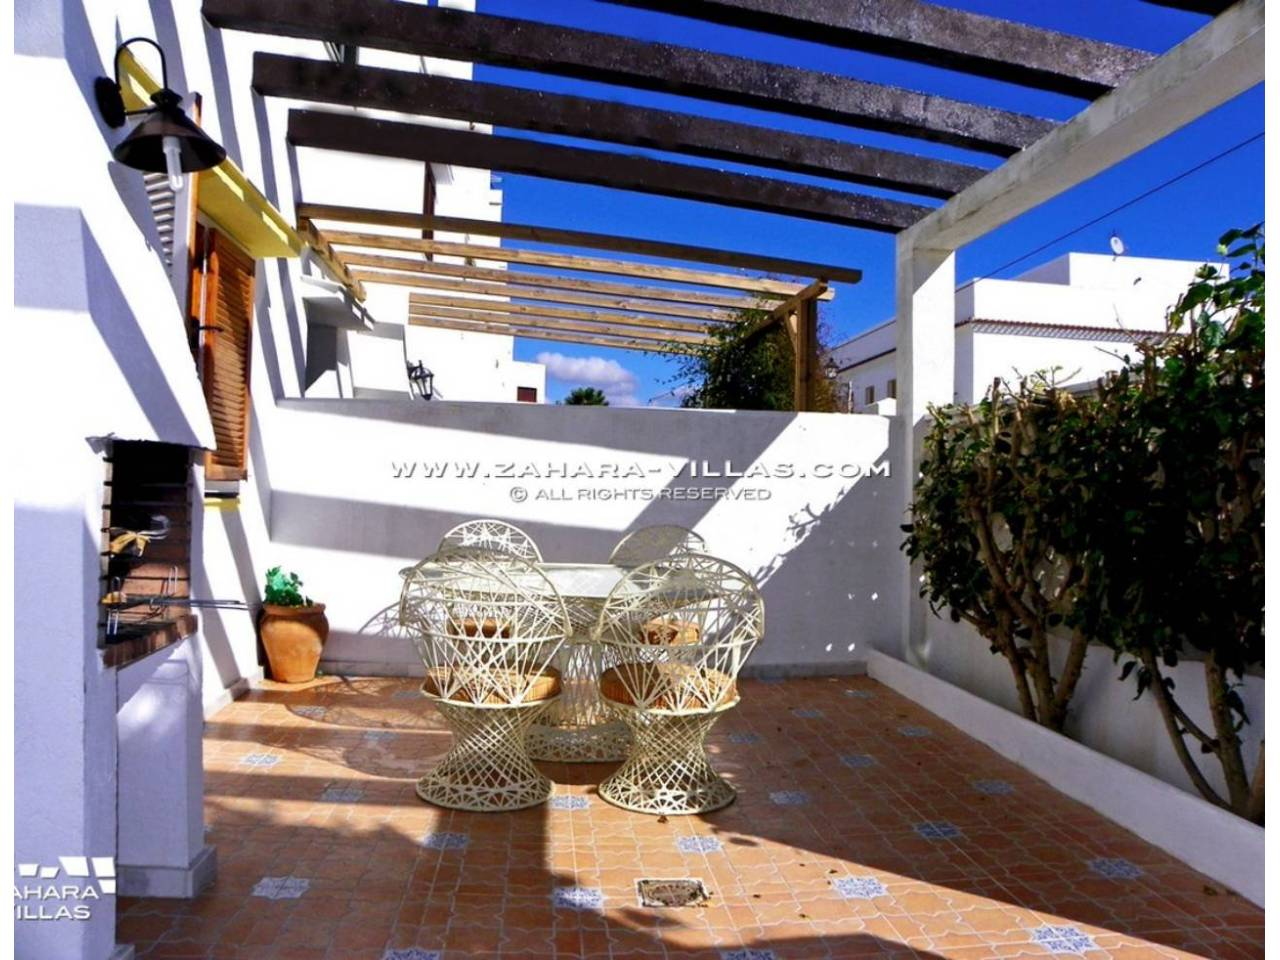 Imagen 3 de Great Townhouse in the village of Zahara de los Atunes for sale